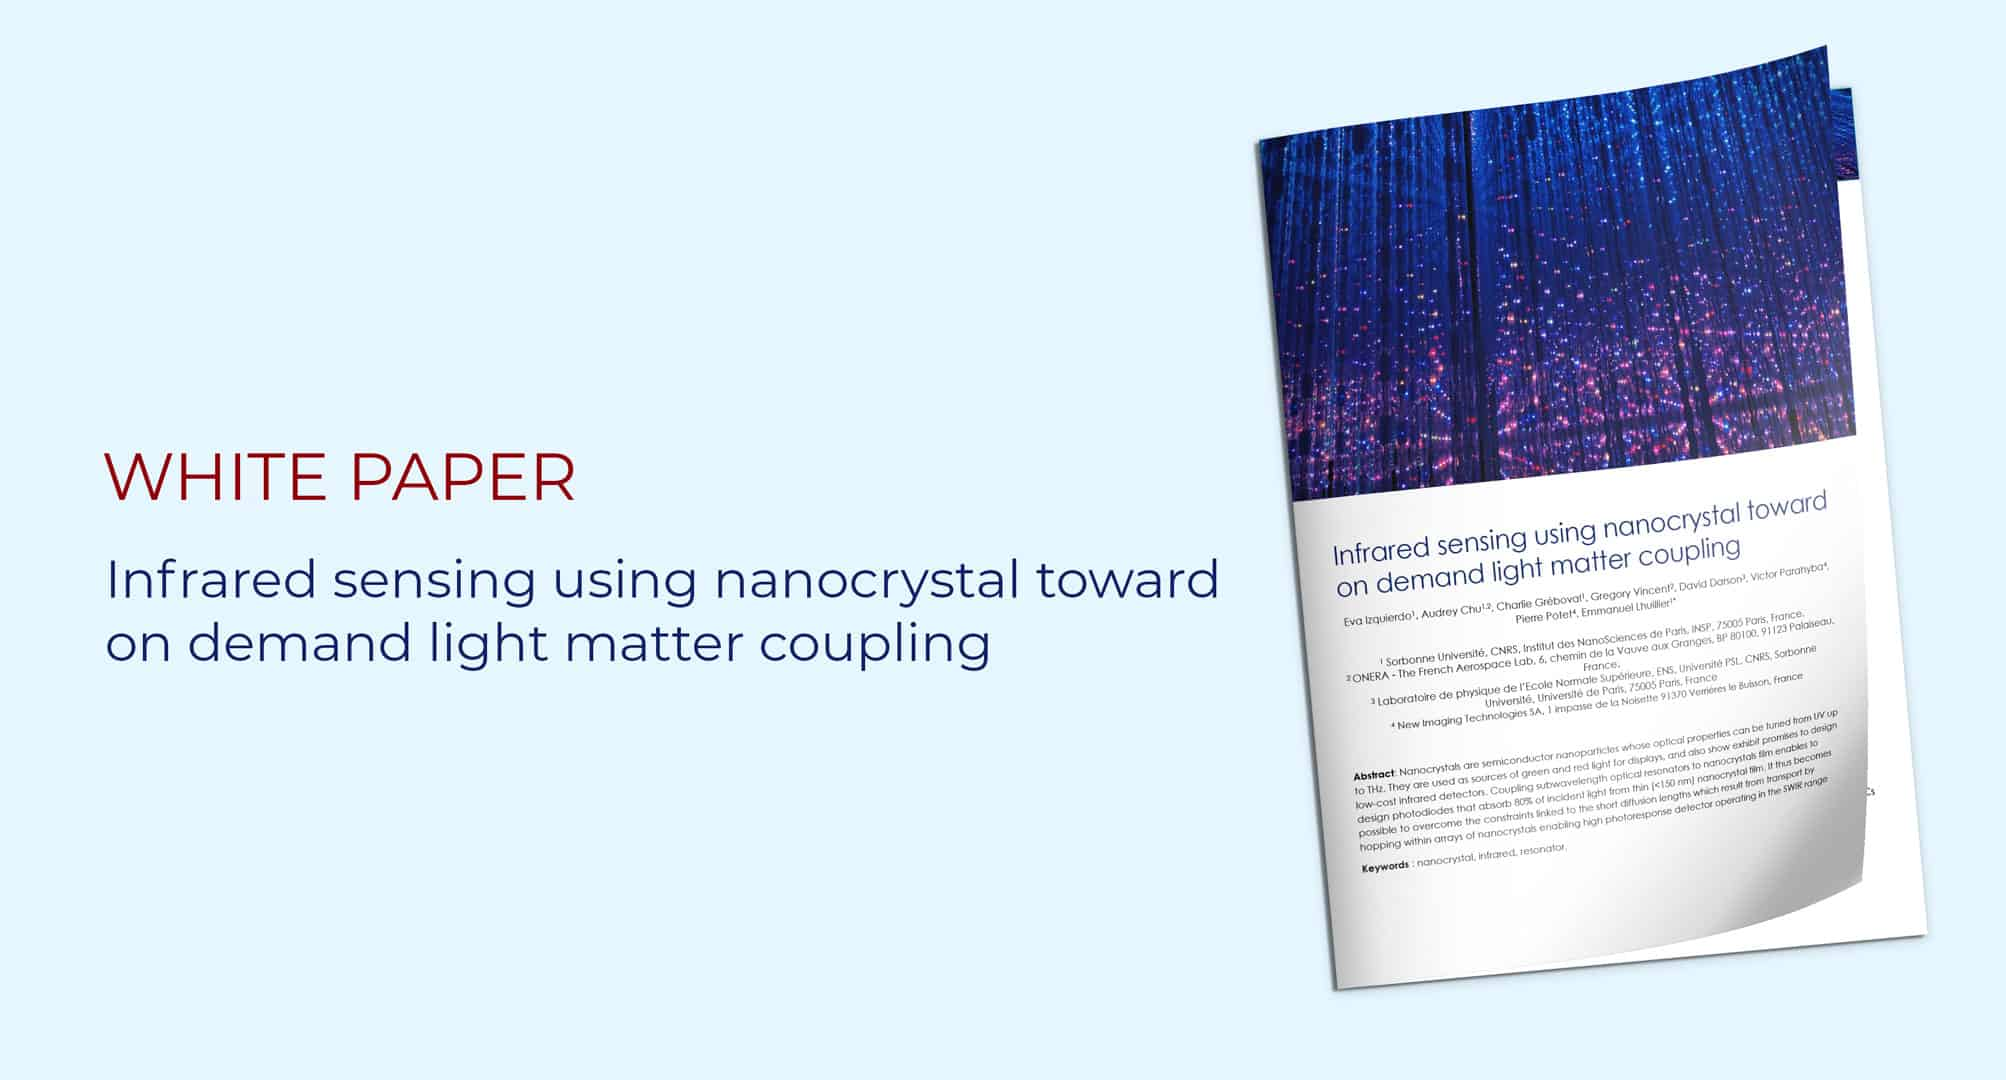 white paper: Infrared sensing using nanocrystal toward on demand light matter coupling